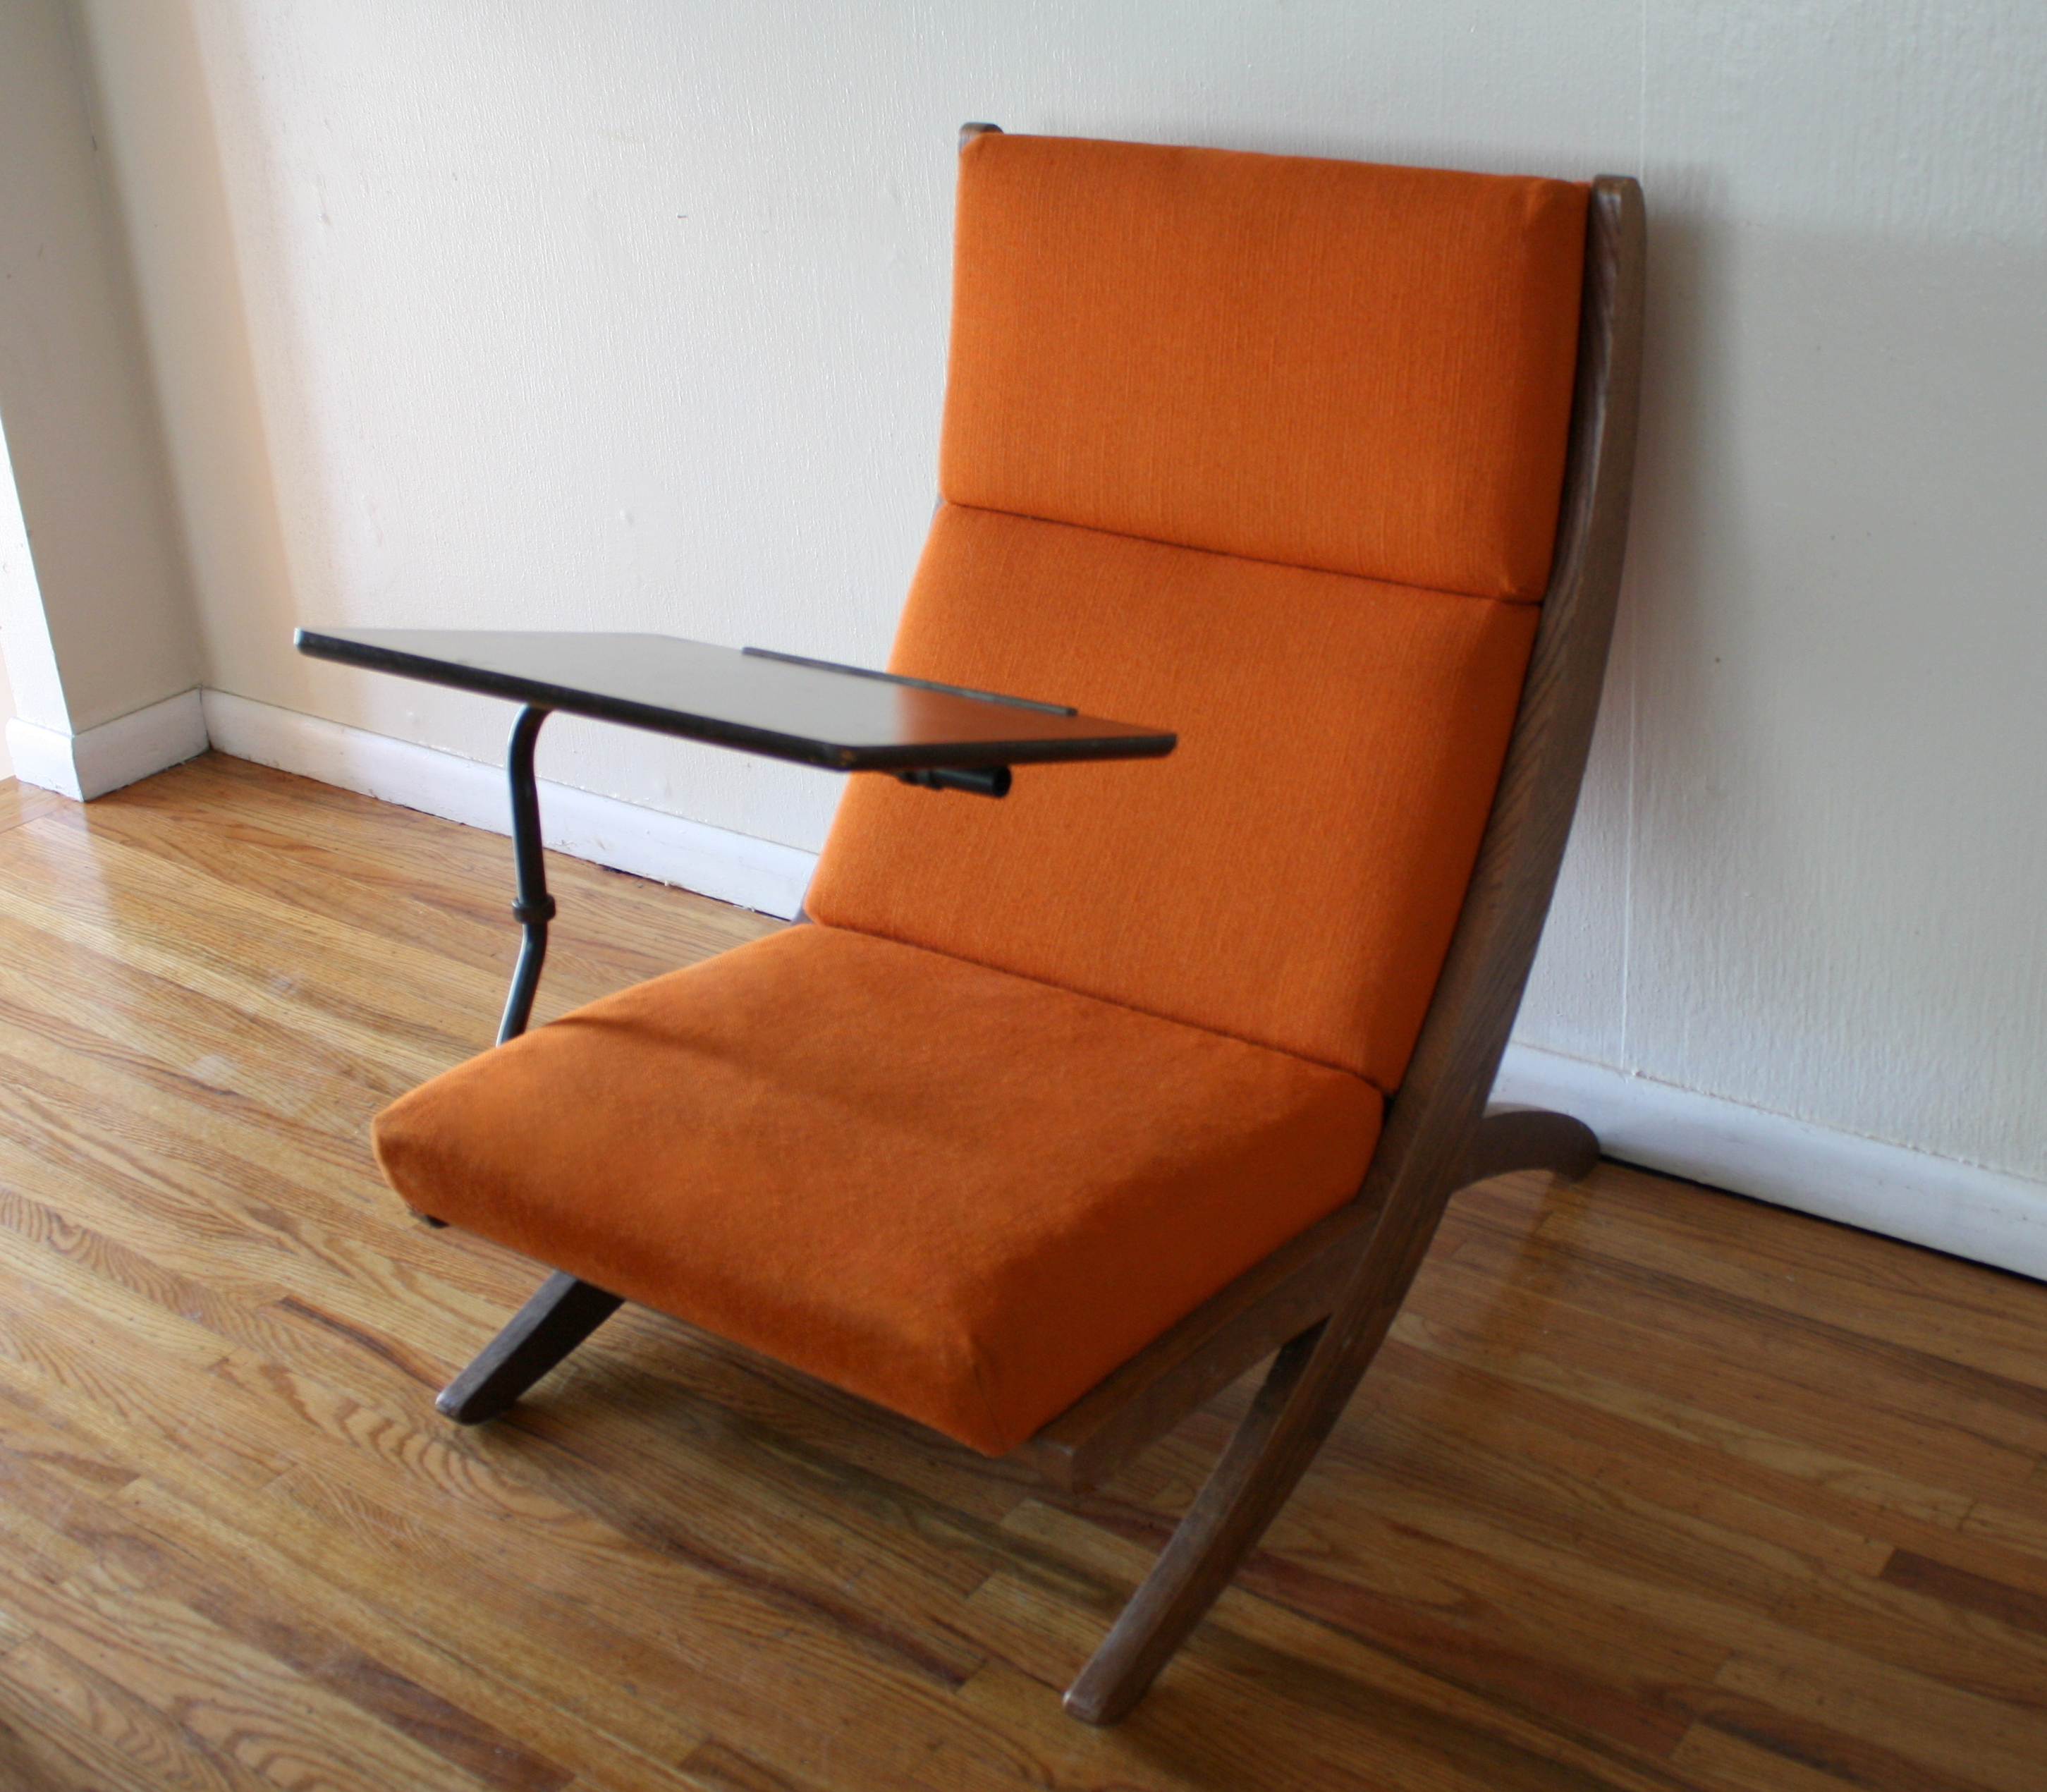 Lounge Desk Chair Mcm Orange Chair With Detachable Writing Desk 2 Picked